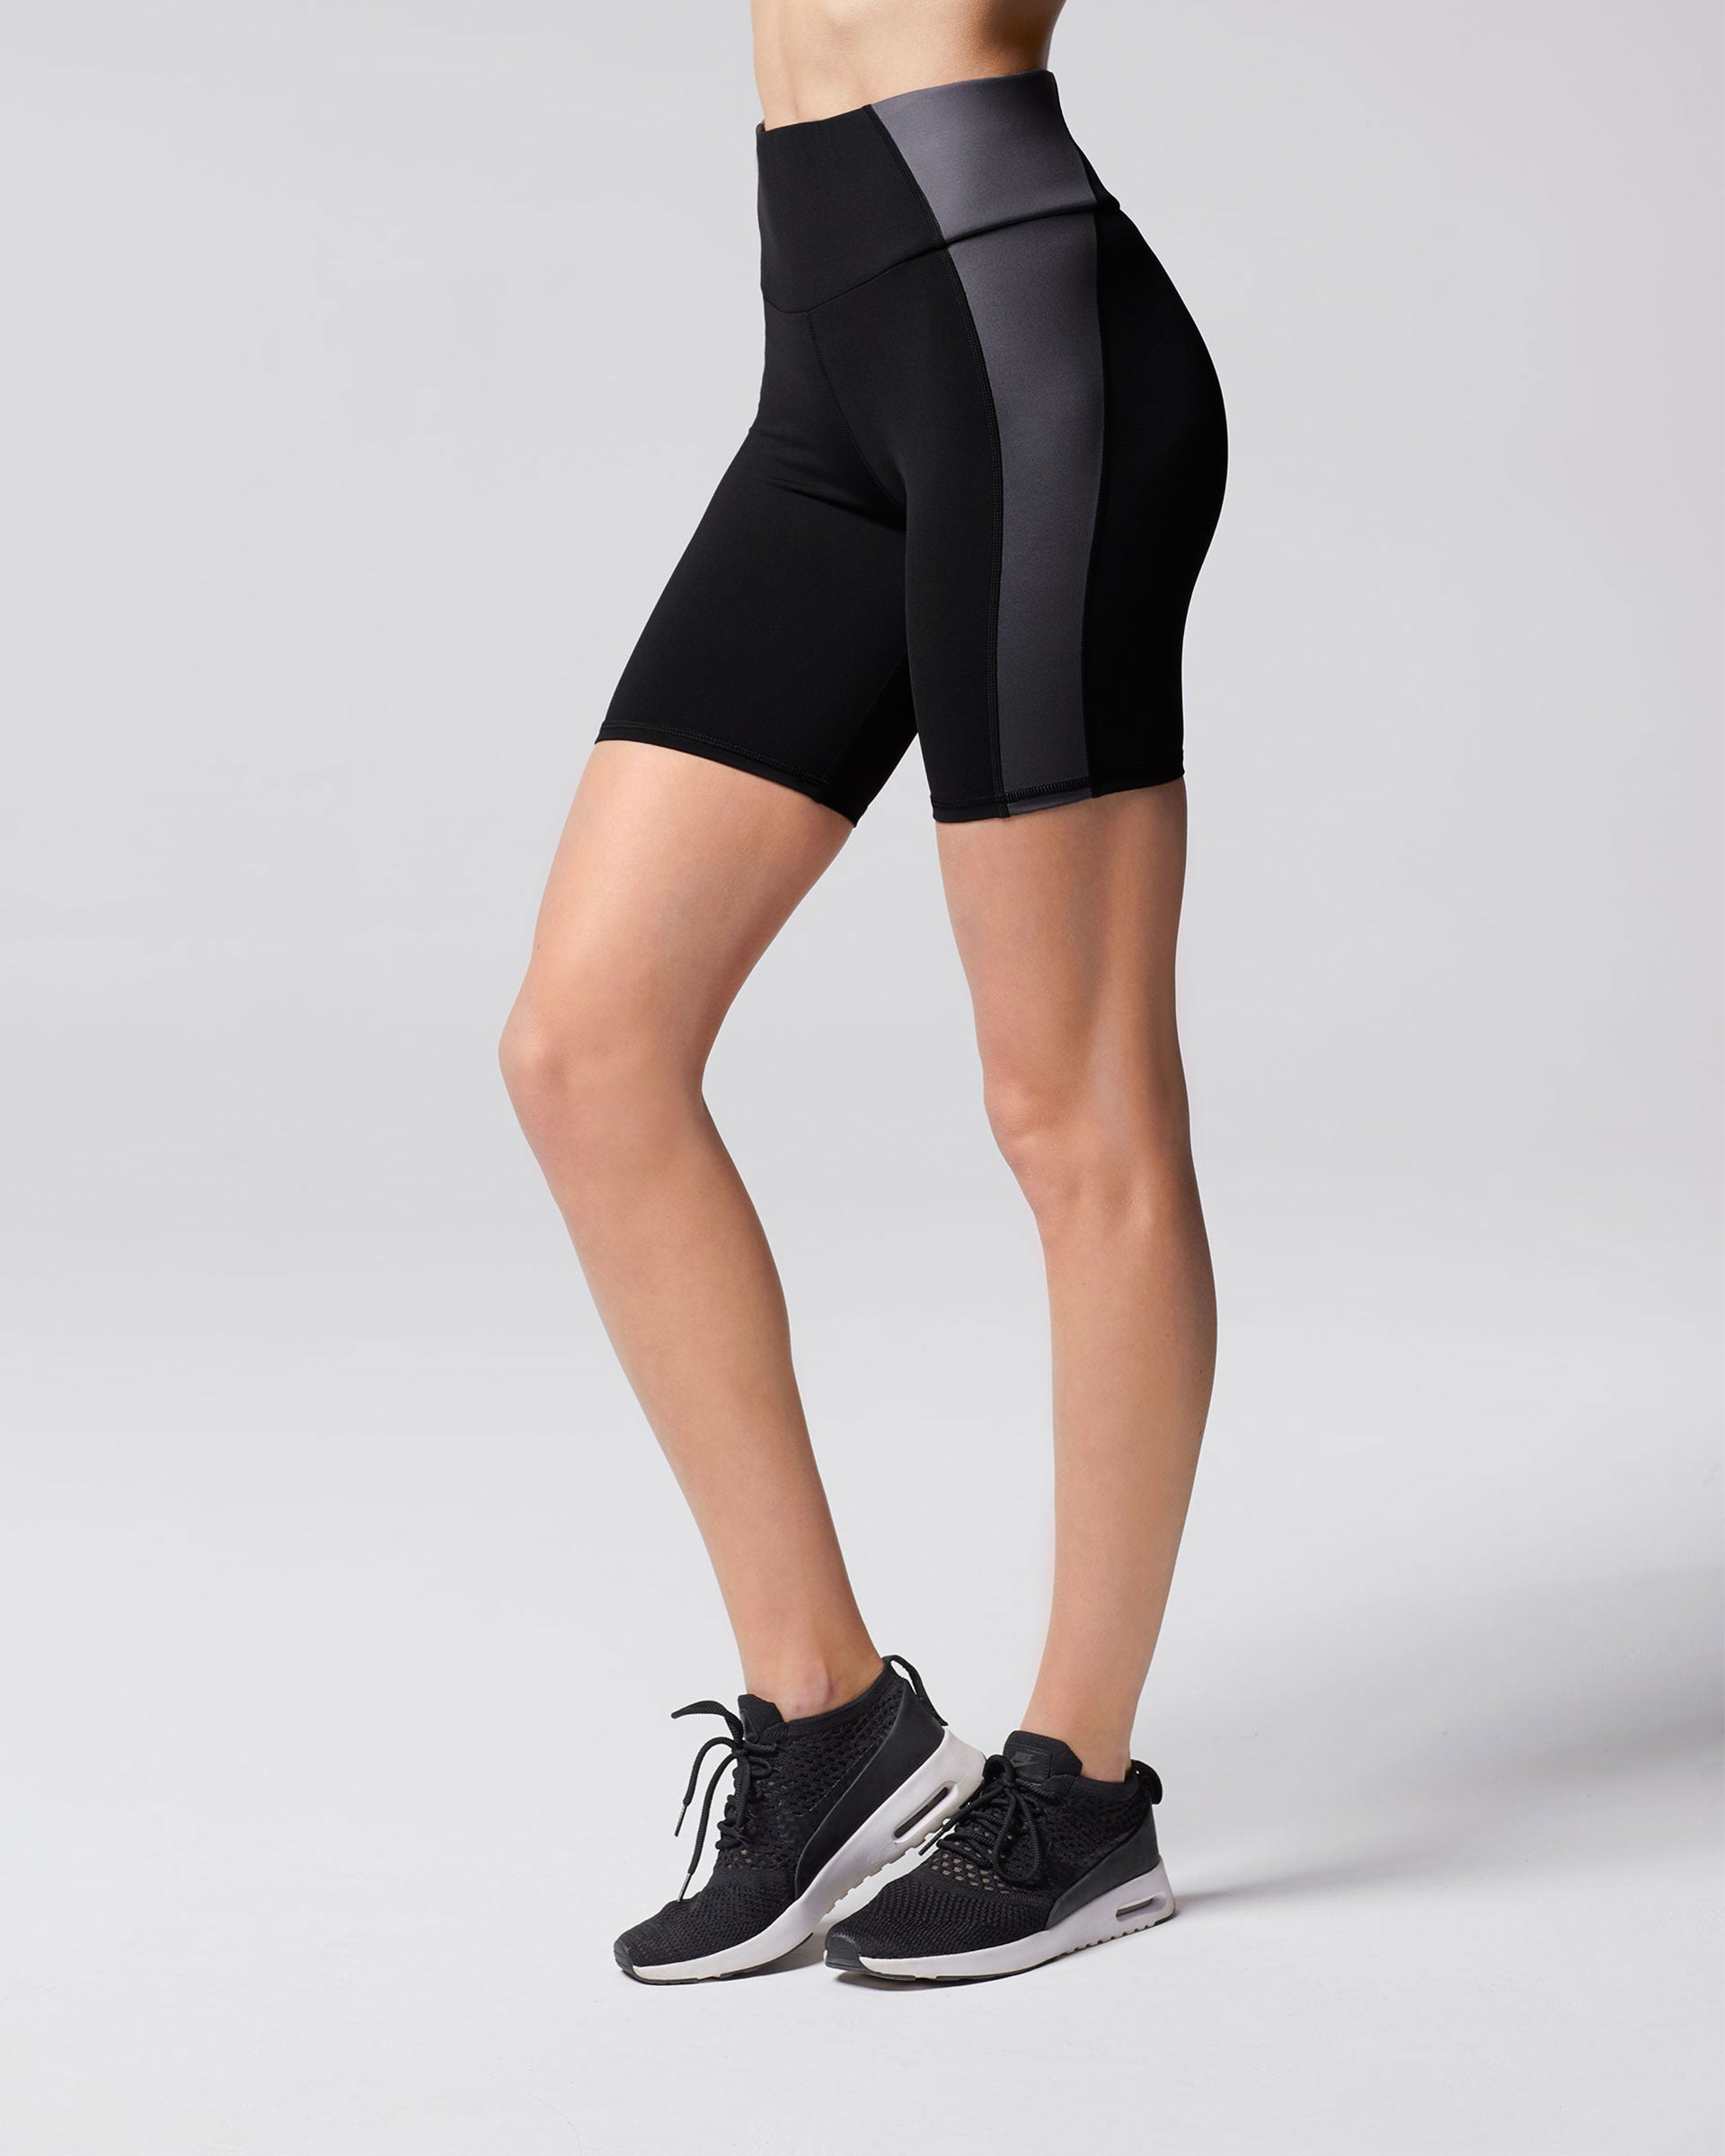 Vibe Bike Short - Black/Gunmetal